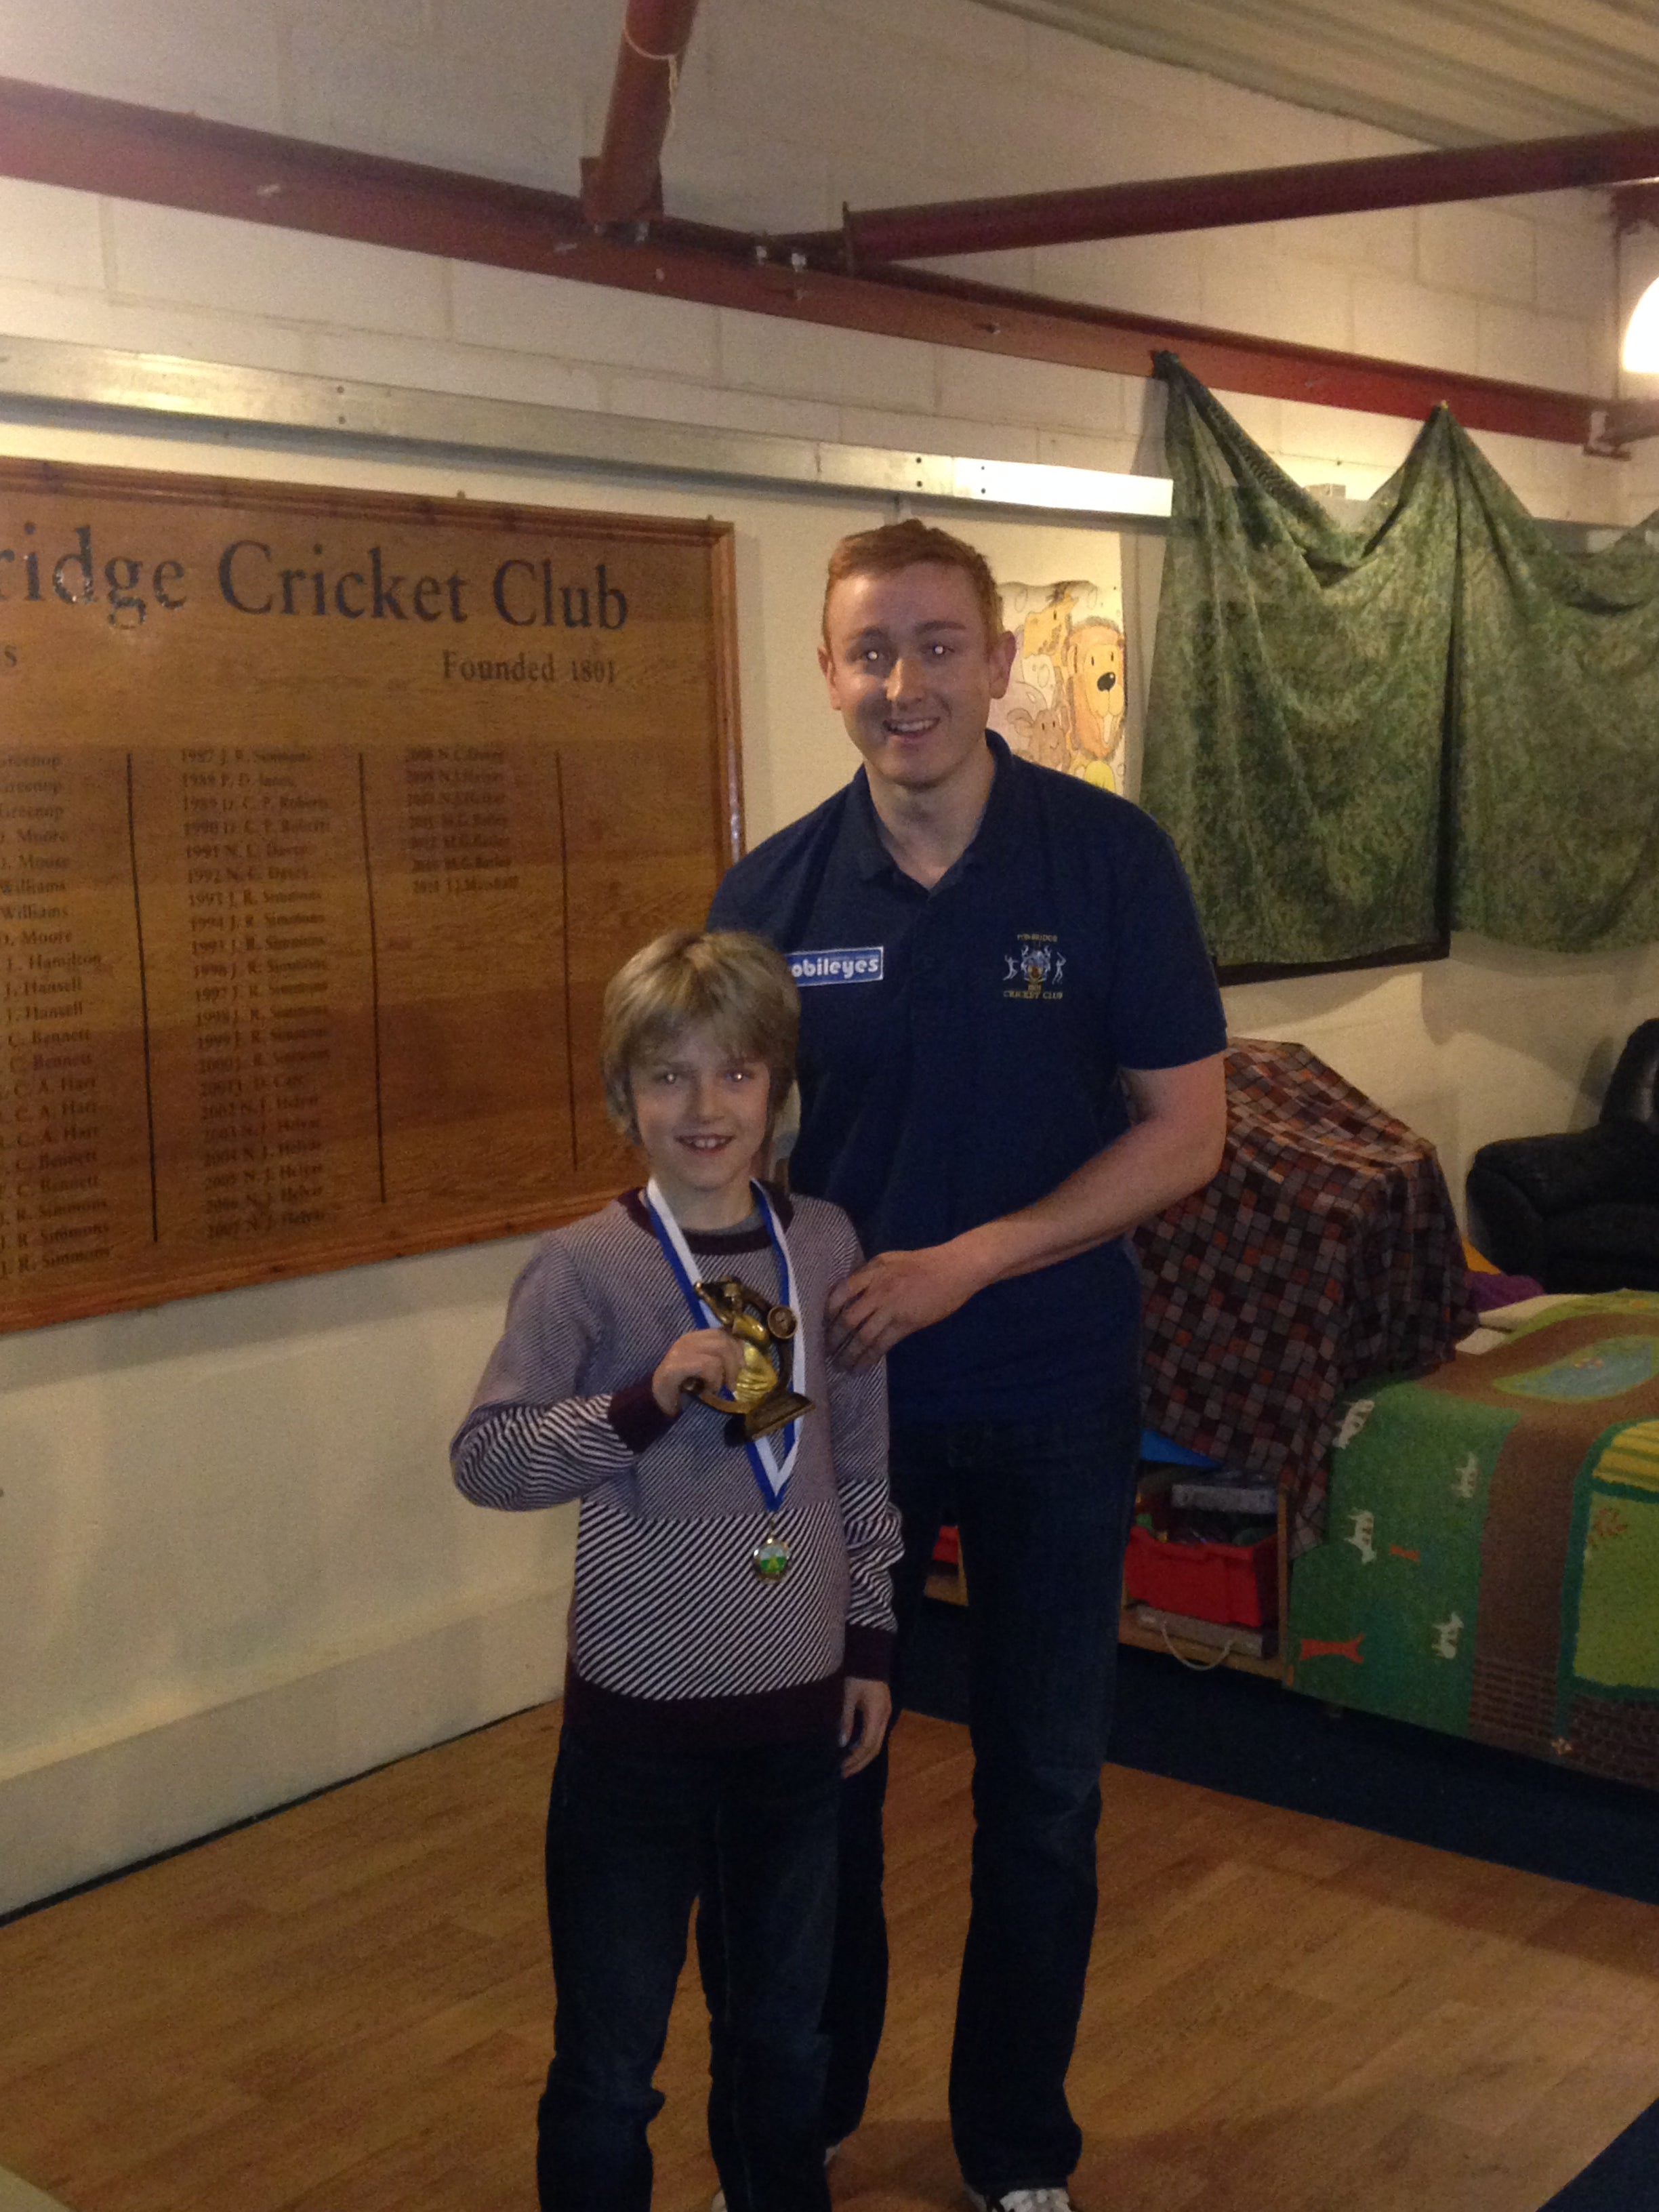 Tonbridge cricket club best bowling figures 2014